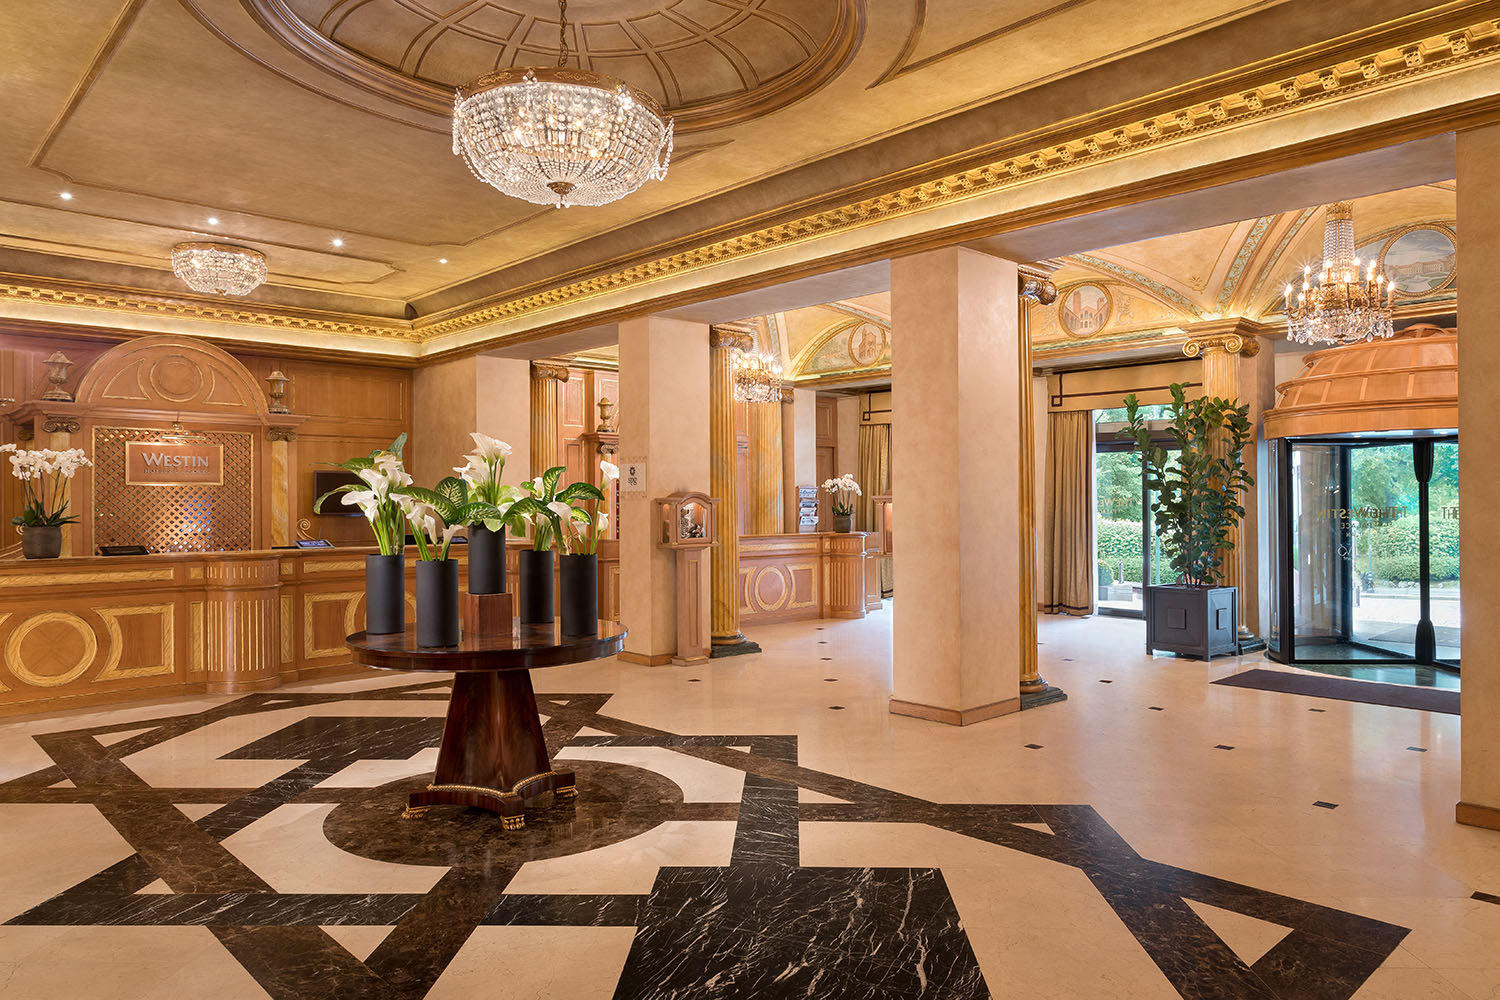 The Westin Palace Milan Flawless Milano The Lifestyle Guide